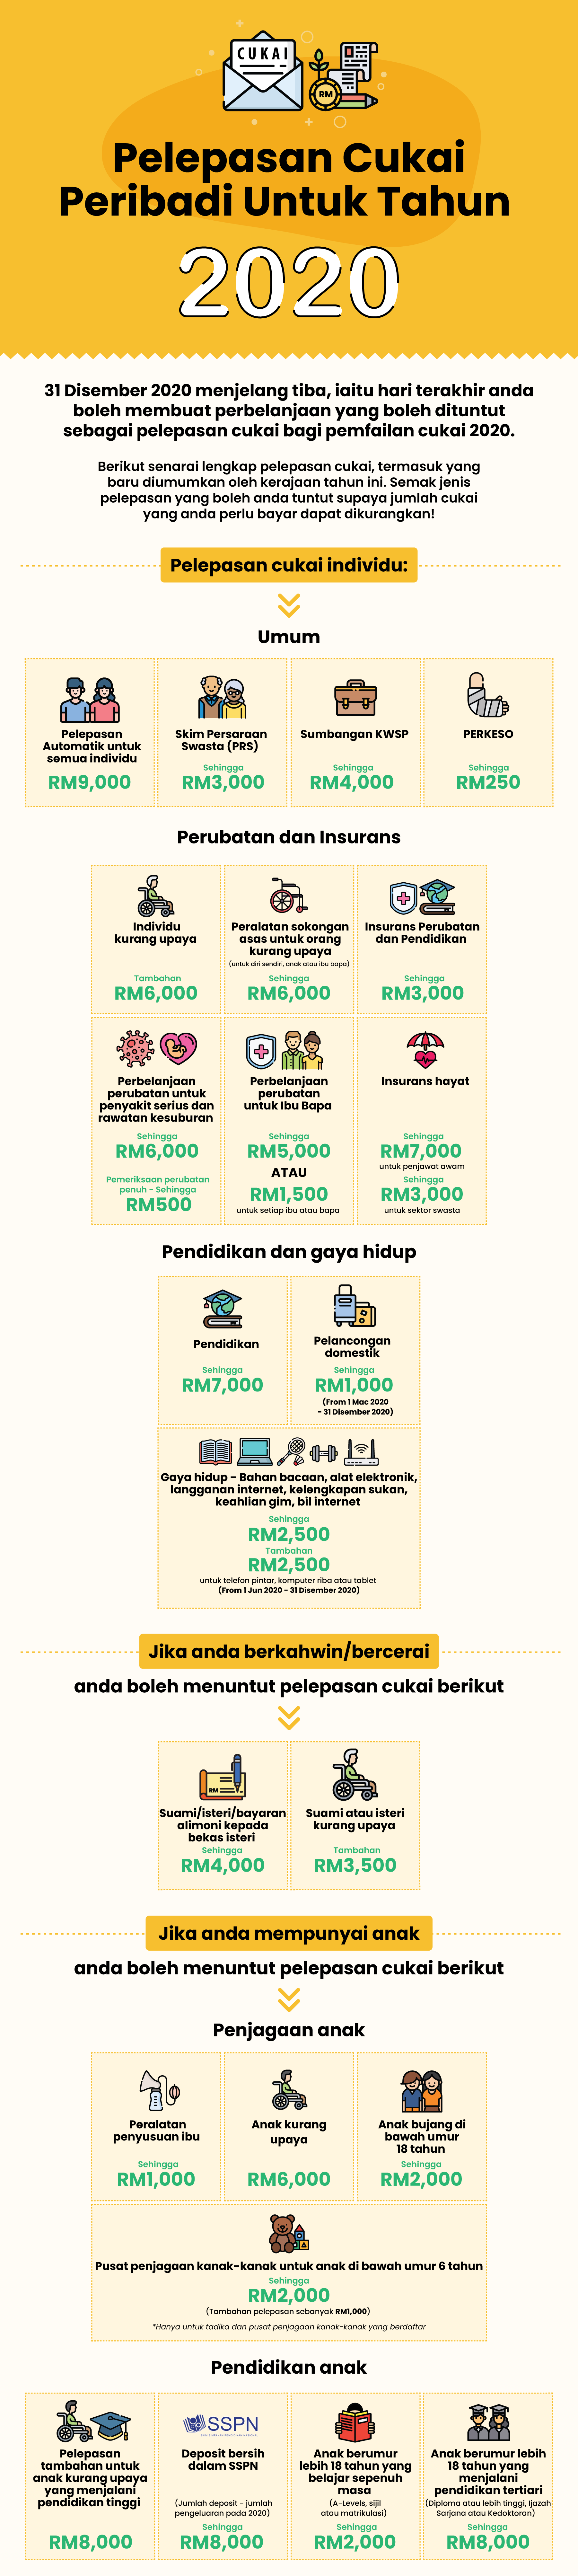 Personal Tax Reliefs For 2020 11 - Multiply - Planning & Budgeting